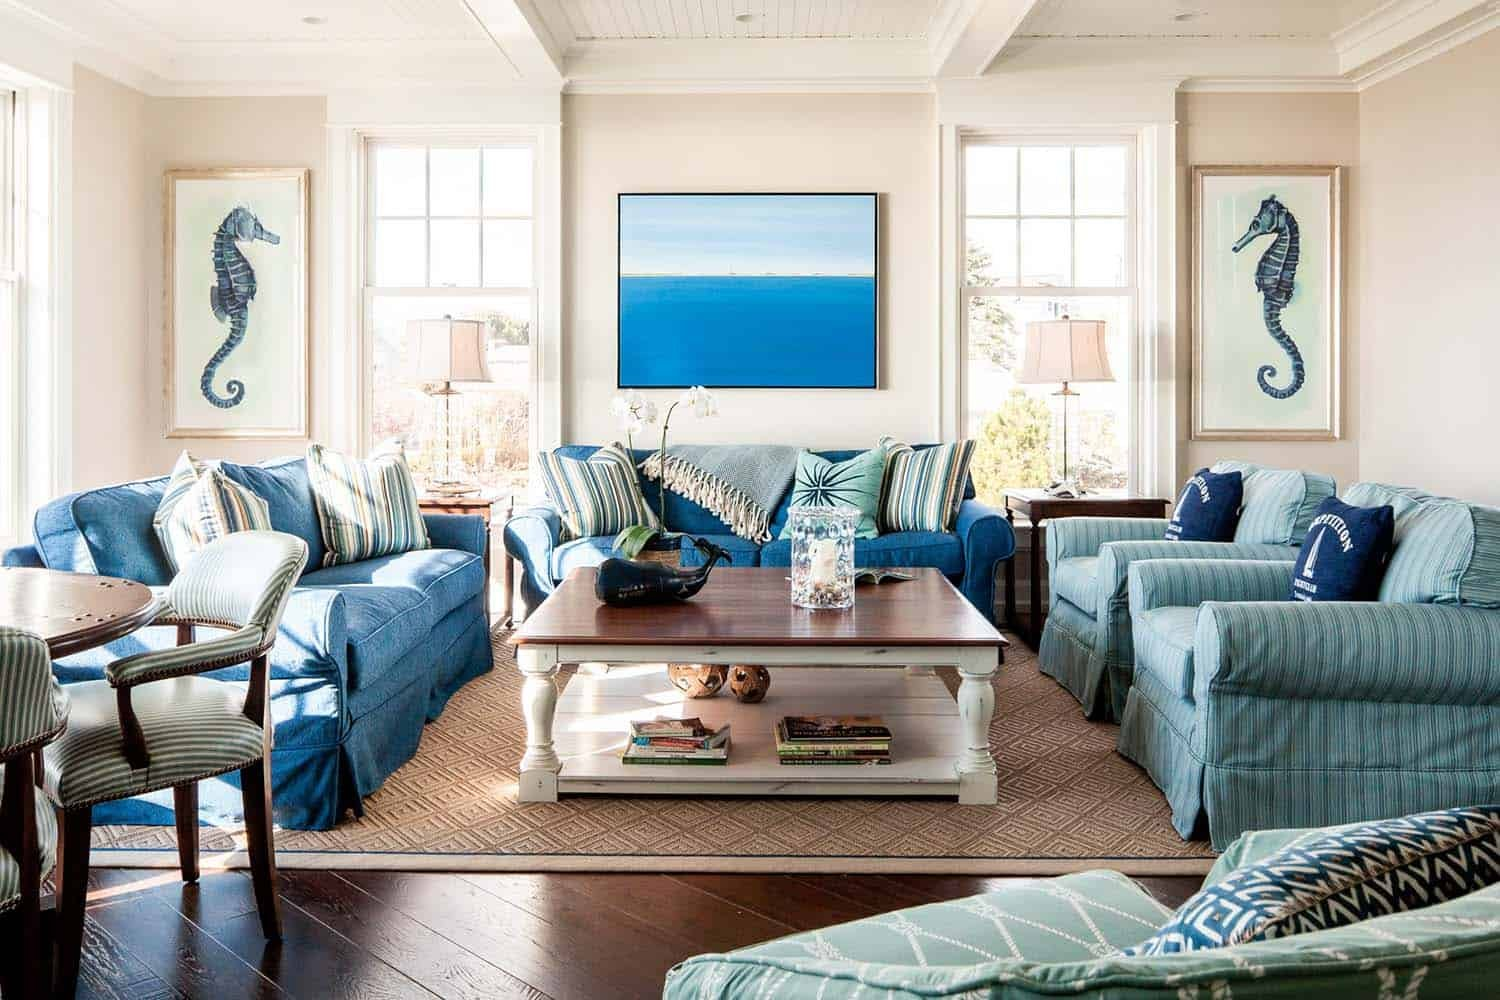 Coastal Interior Design: Essential Tips For A Modern Beach Style Home